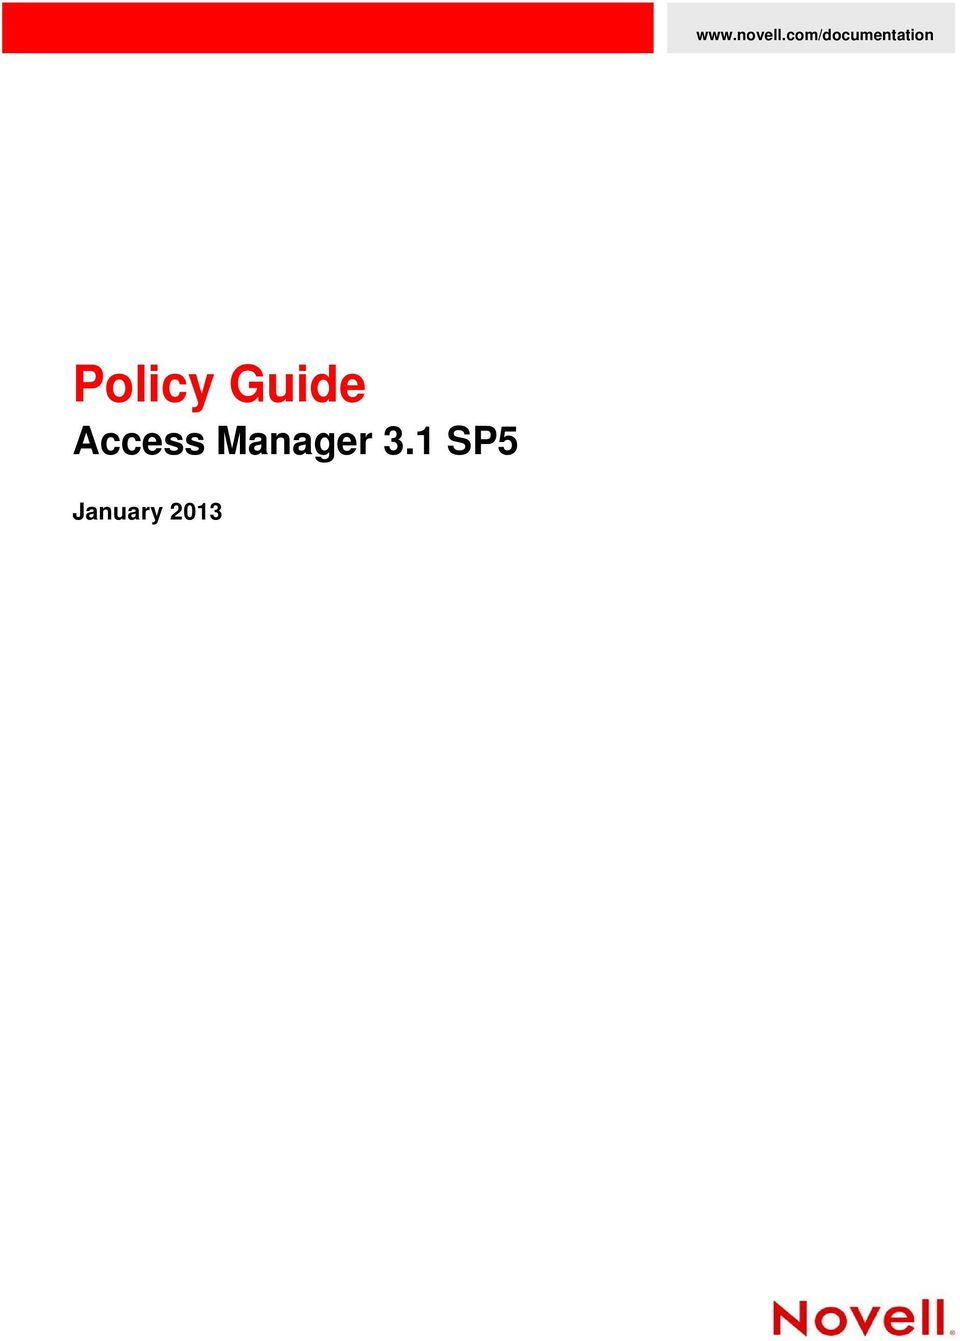 Policy Guide Access